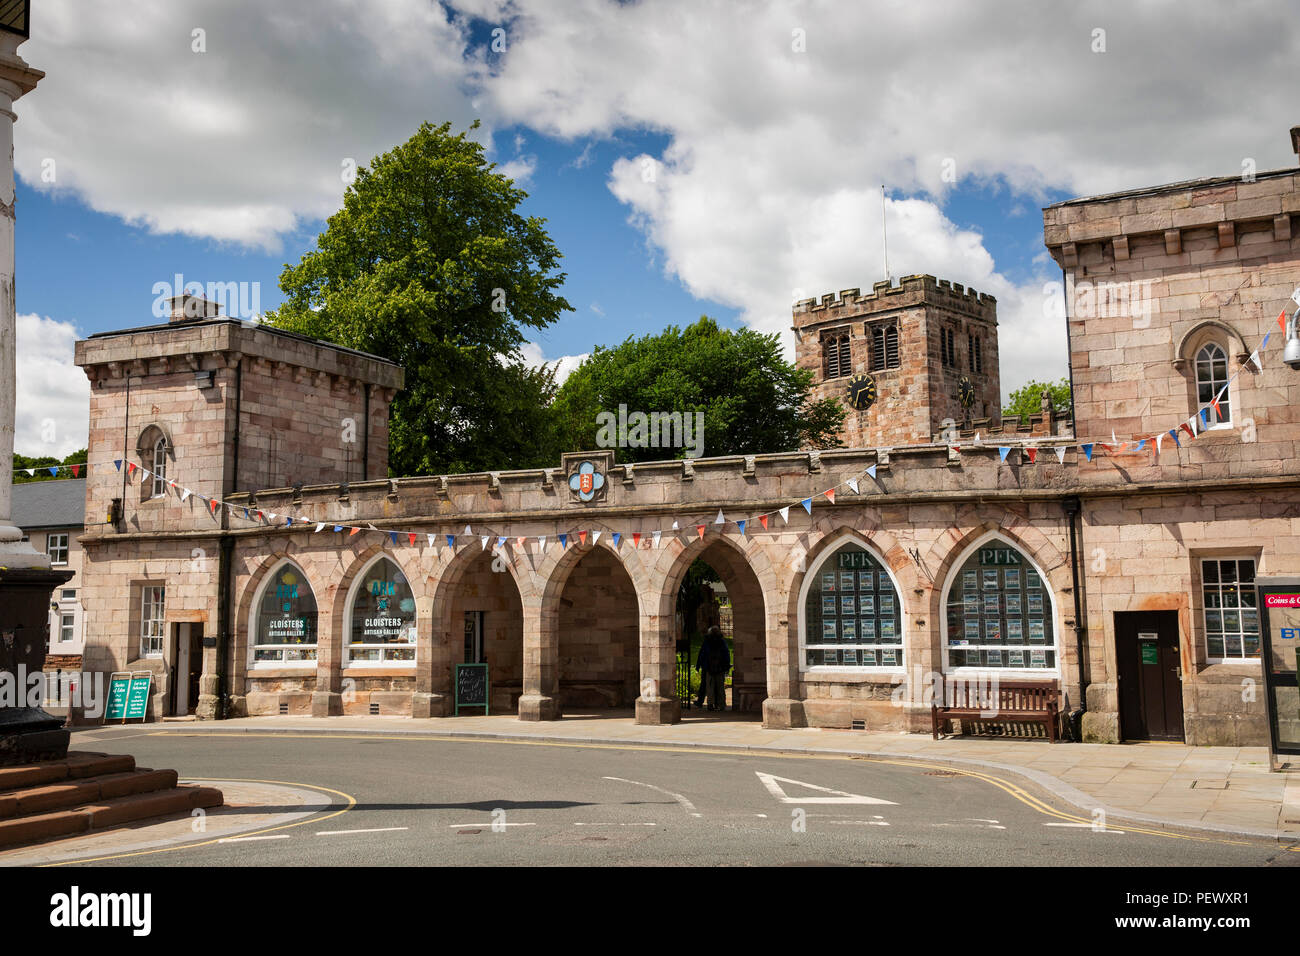 UK, Cumbria, Eden Valley, Appleby, Boroughgate, 1811 cloisters outside St Lawrence's Church - Stock Image